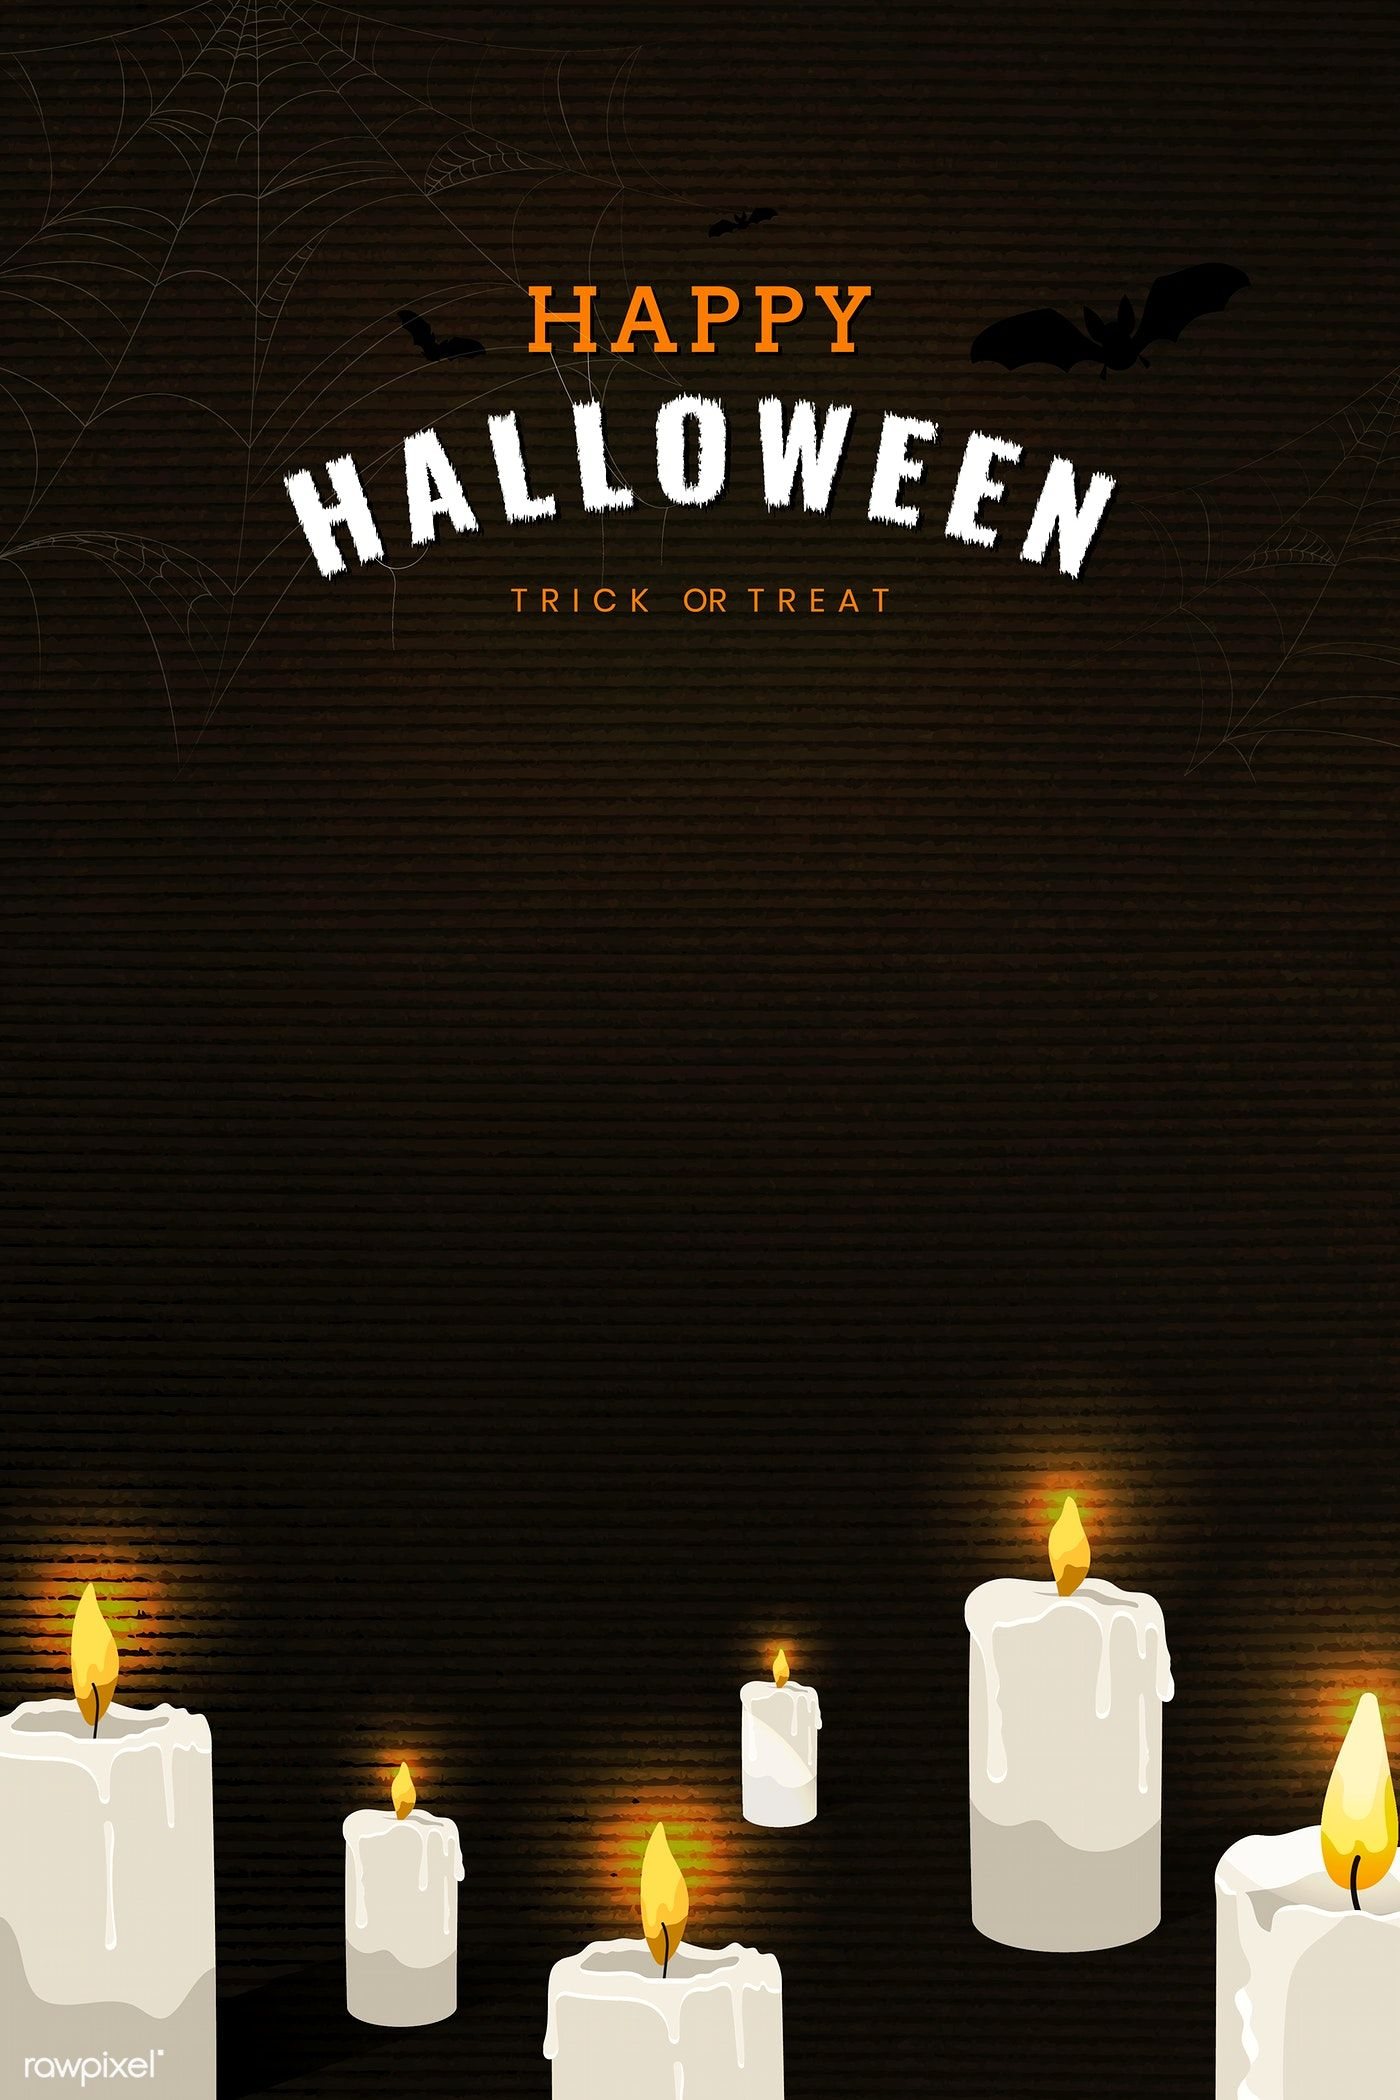 Happy Halloween candle elements on black background vector